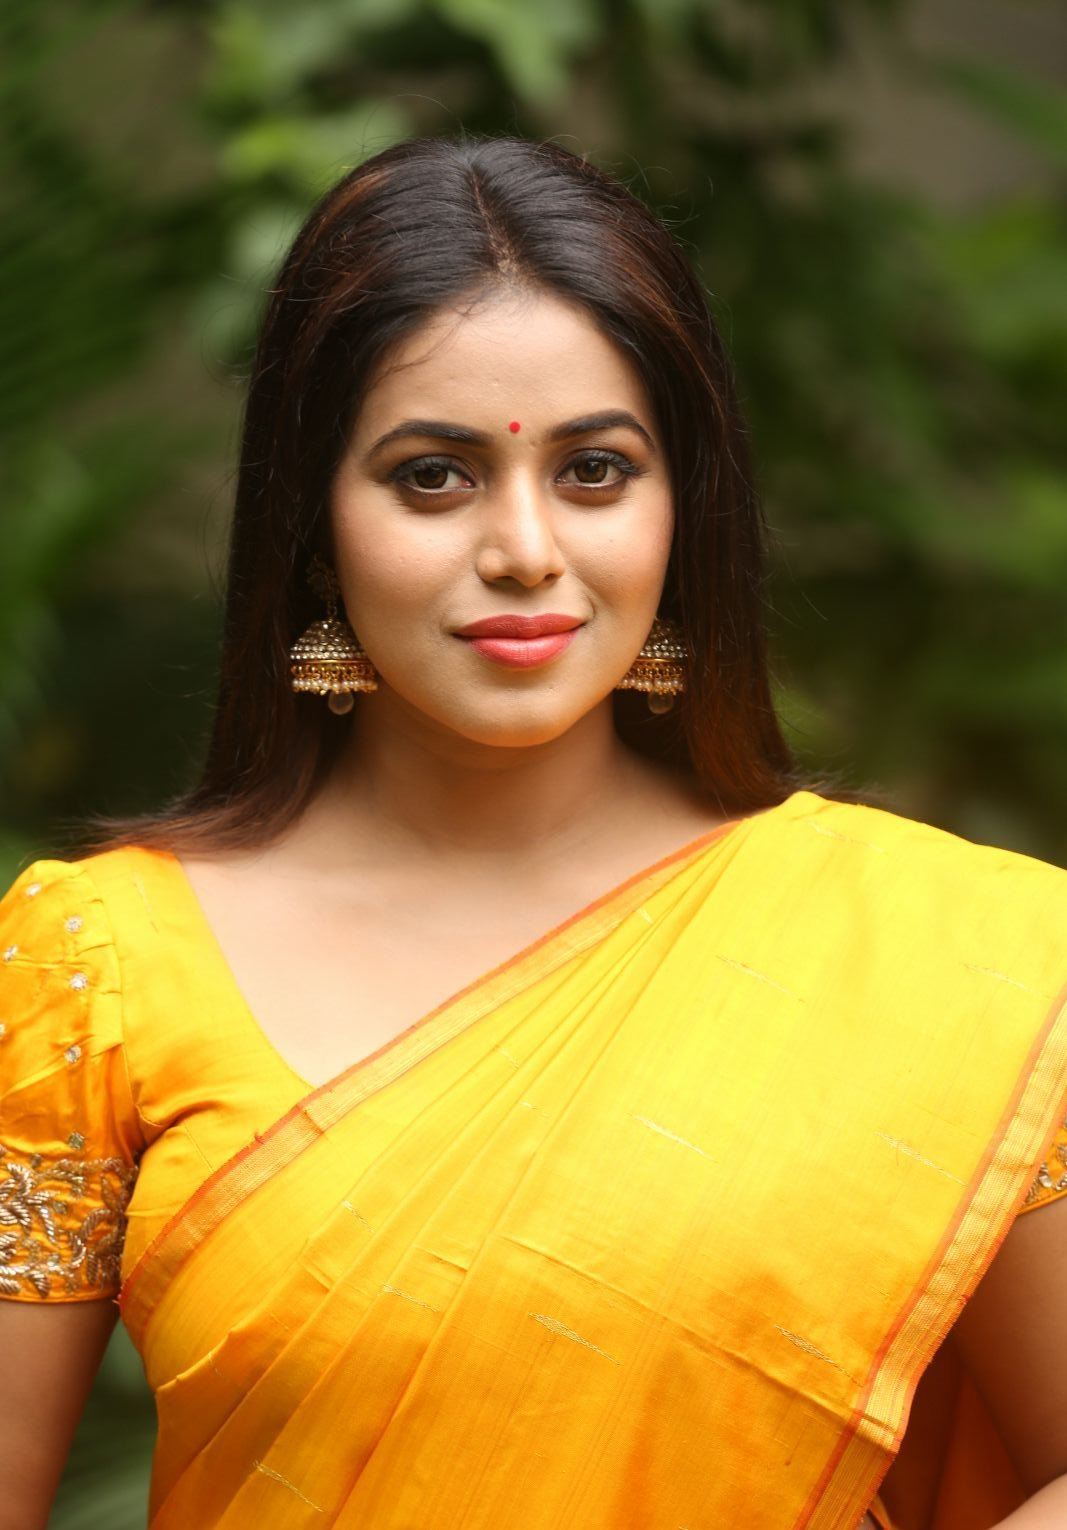 tamil actress poorna latest saree photos by indian girls whatsapp numbers